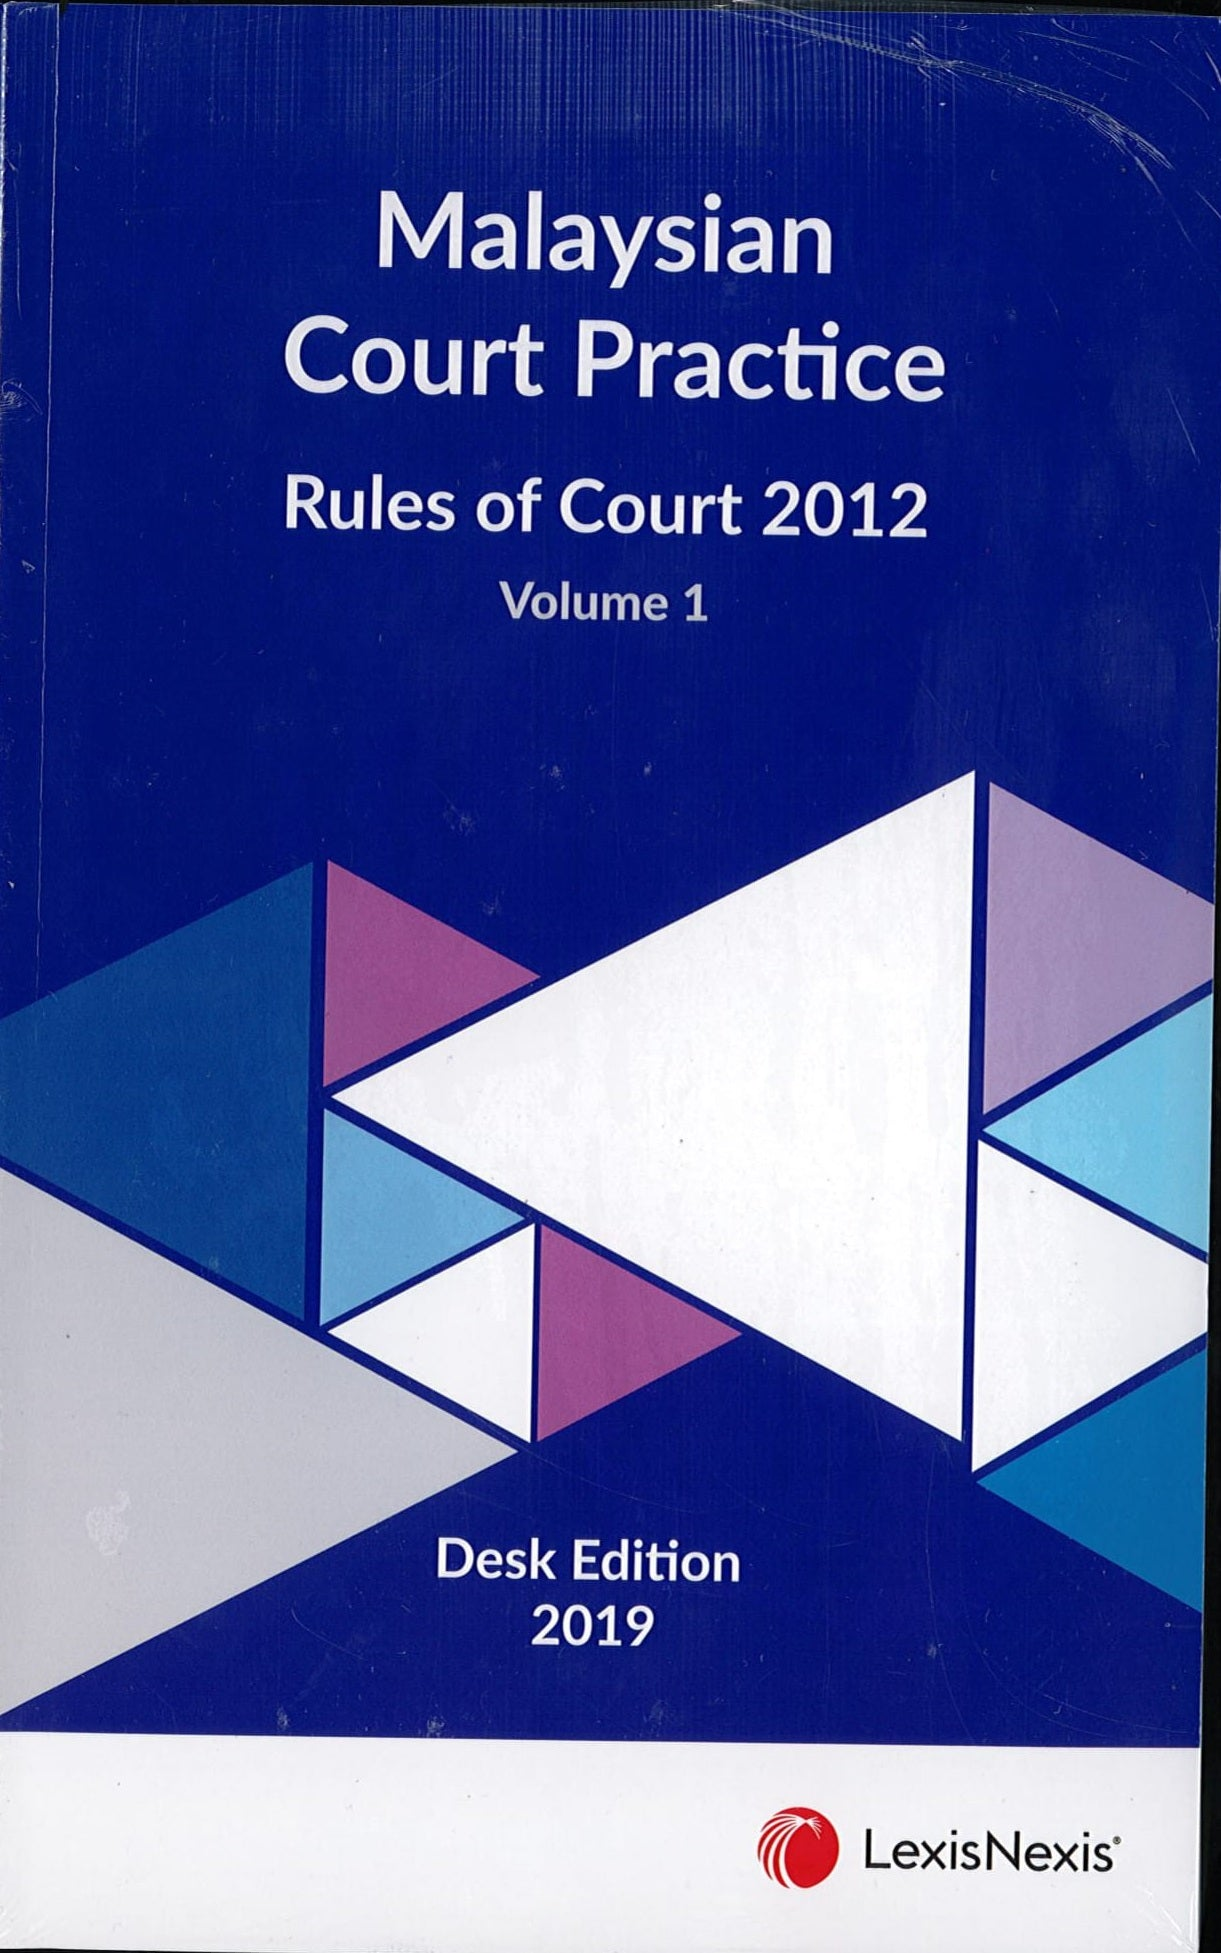 Malaysian Court Practice, Rules of Court 2012, Desk Edition 2019